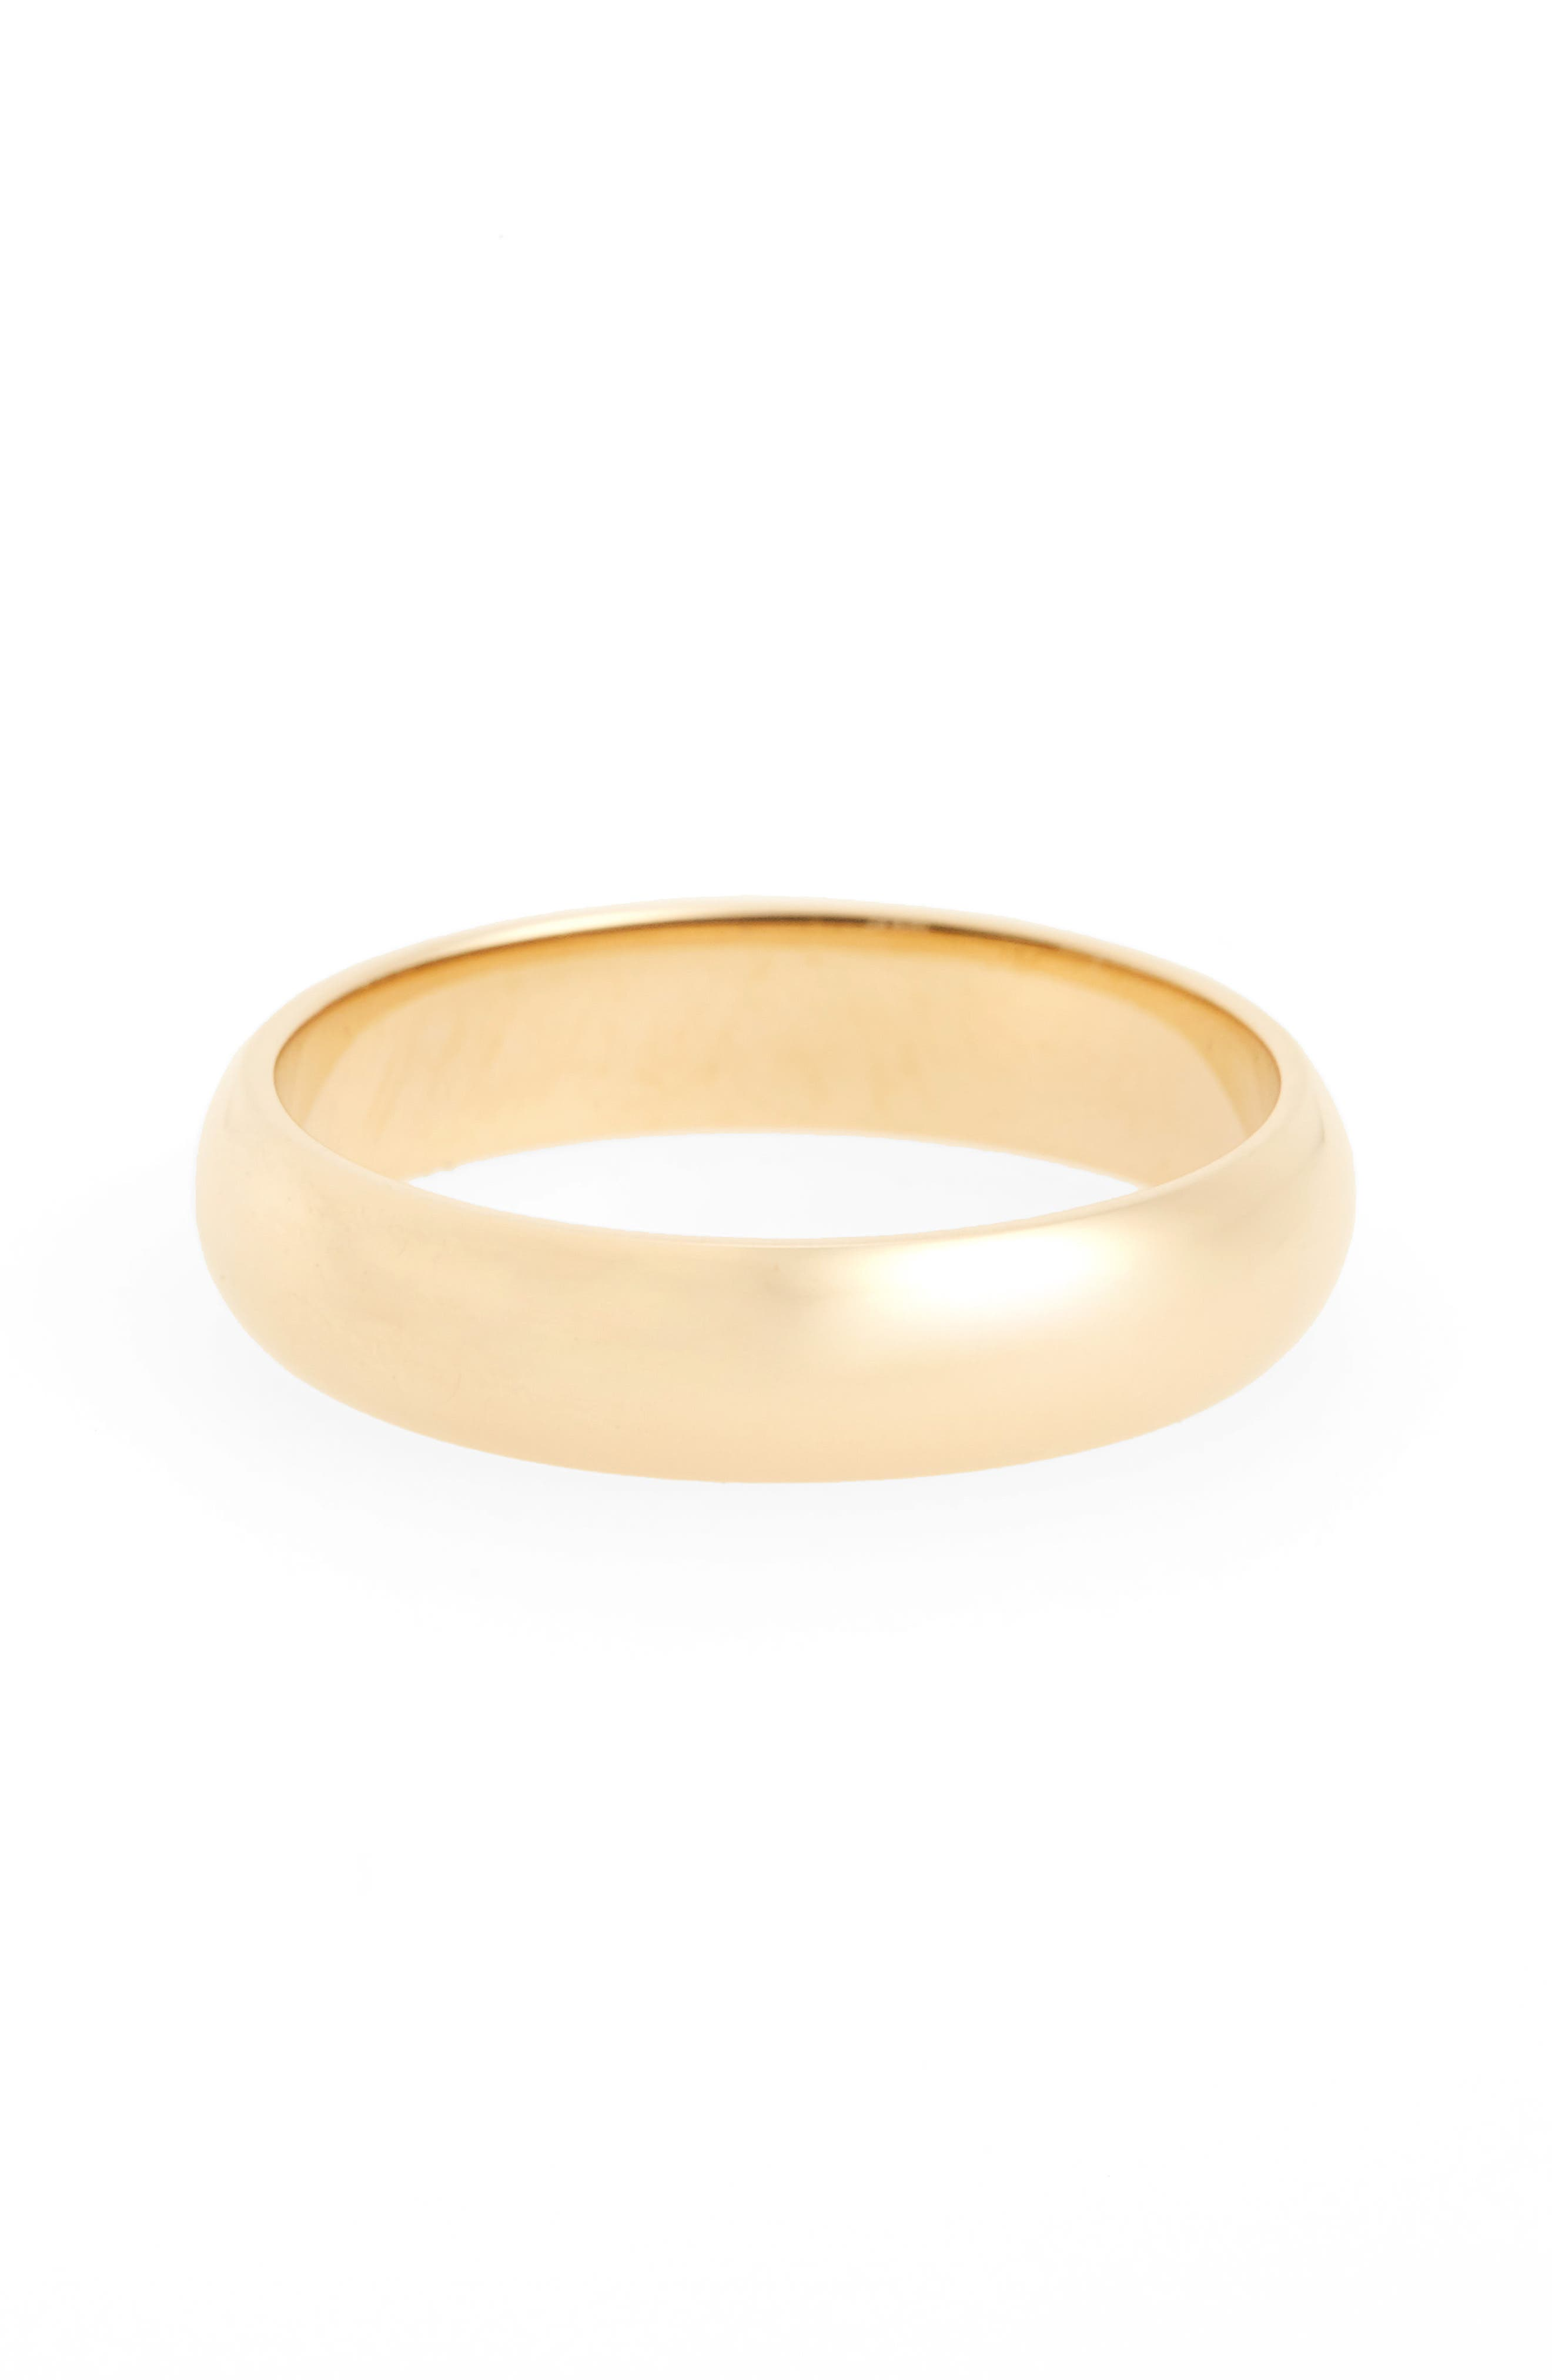 Alternate Image 1 Selected - WWAKE Harmony® Half Round Classic Band Ring (Nordstrom Exclusive)